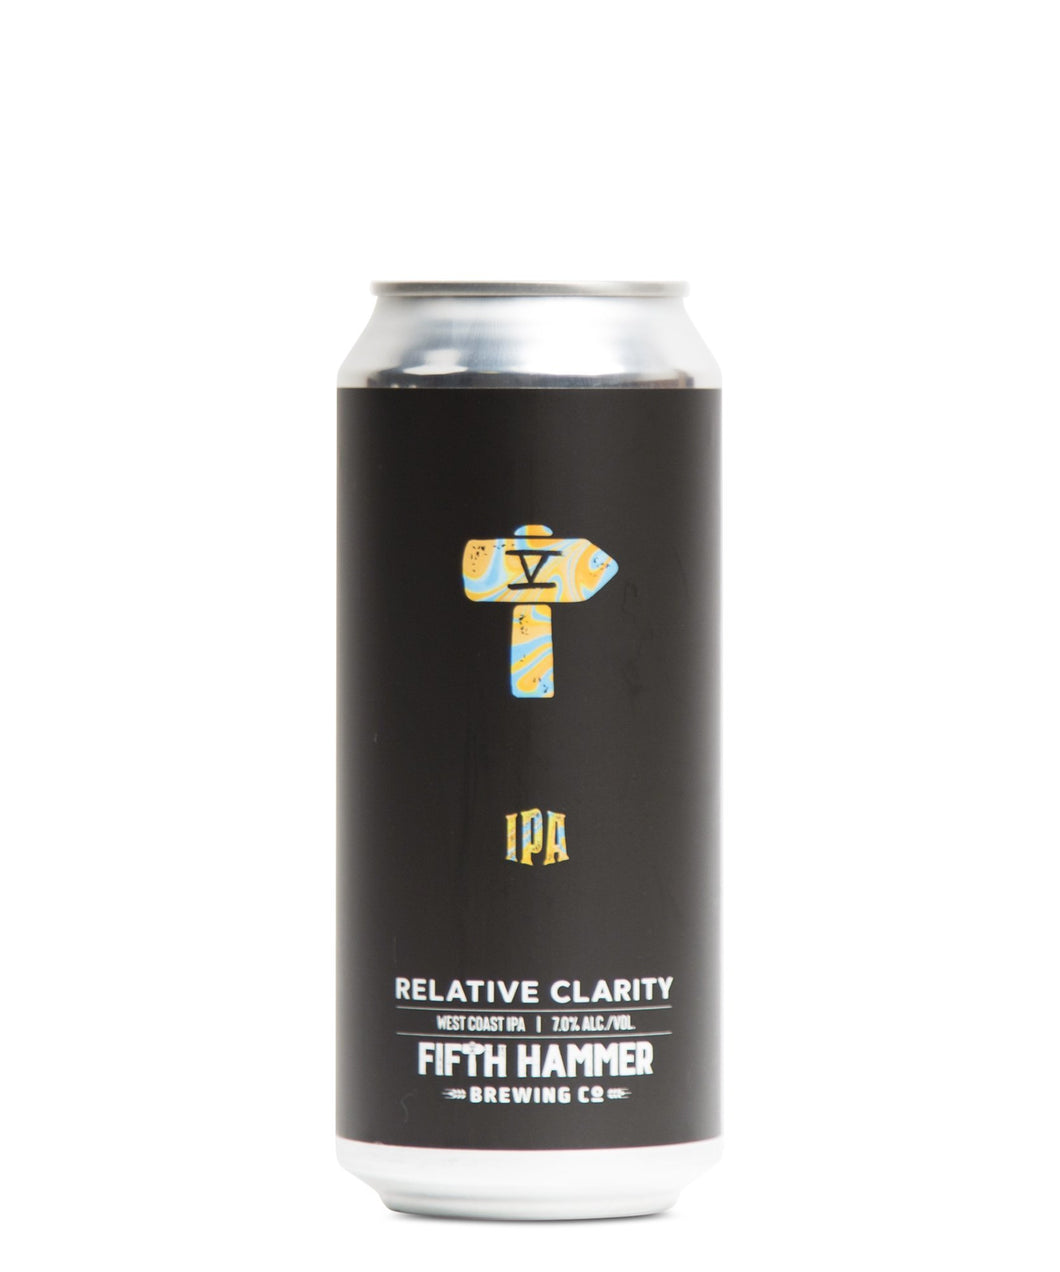 Relative Clarity - Fifth Hammer Brewing Company Delivered By TapRm